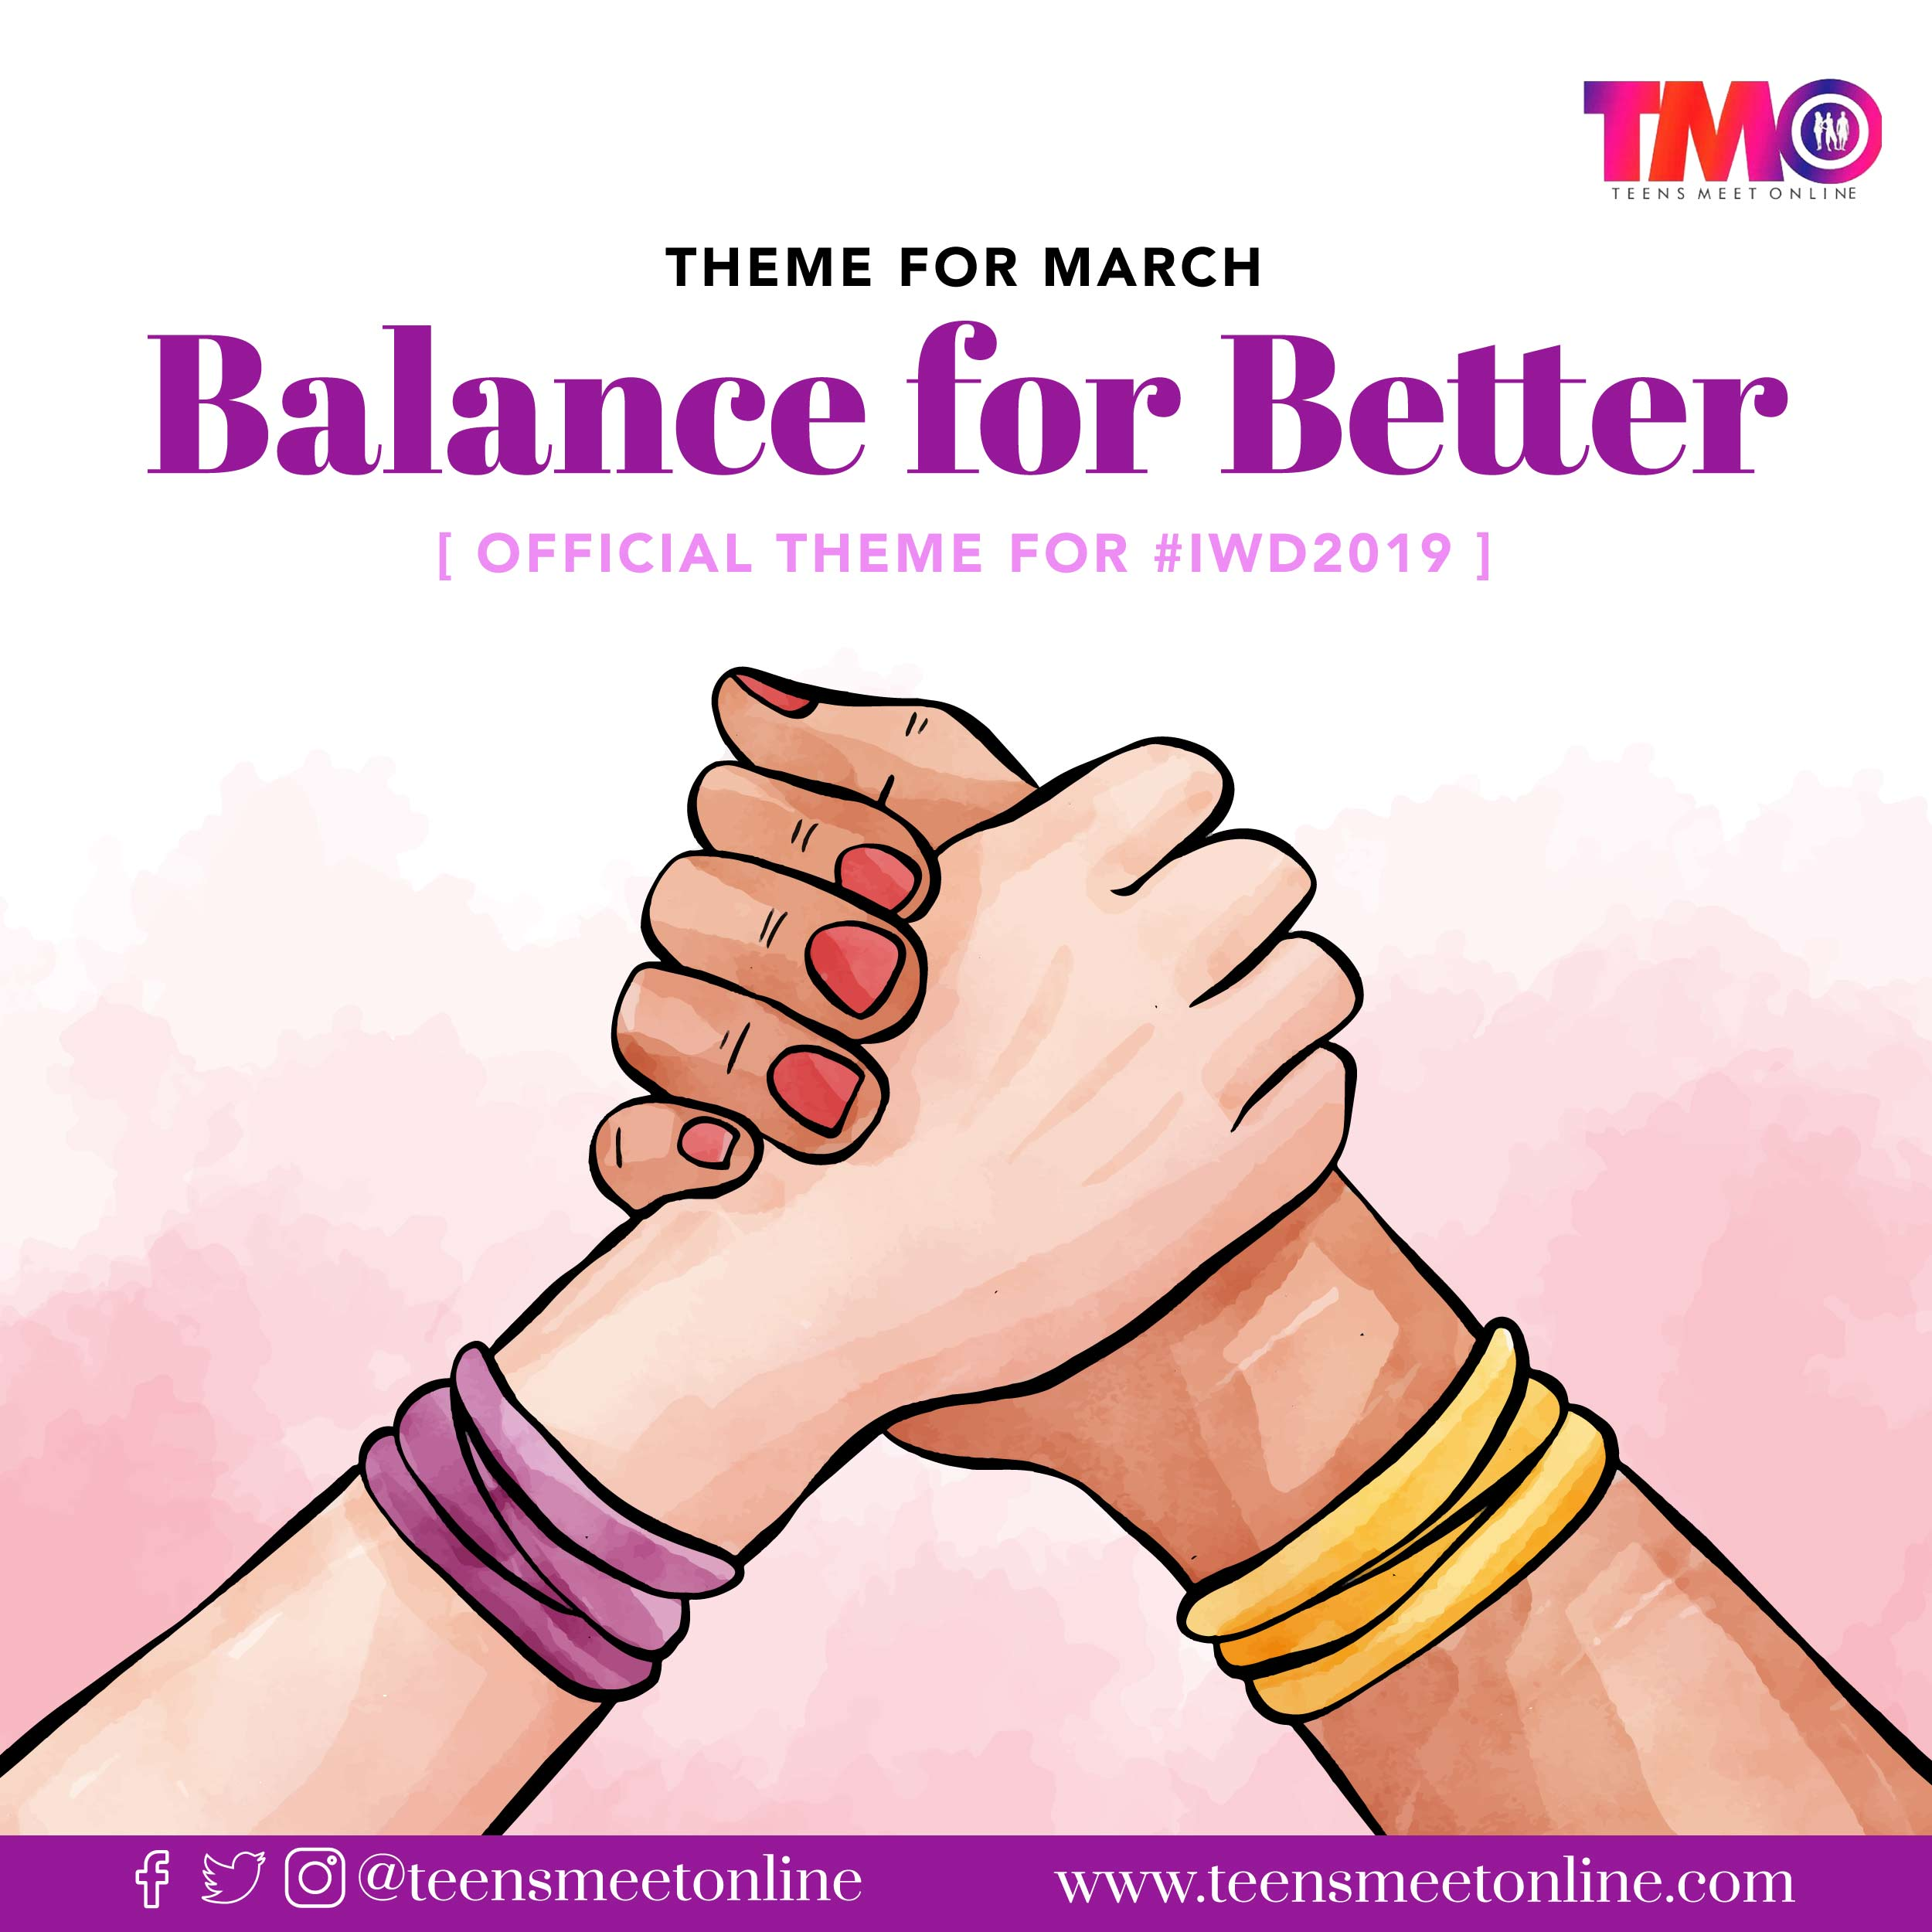 Balance-for-better, March theme 2019